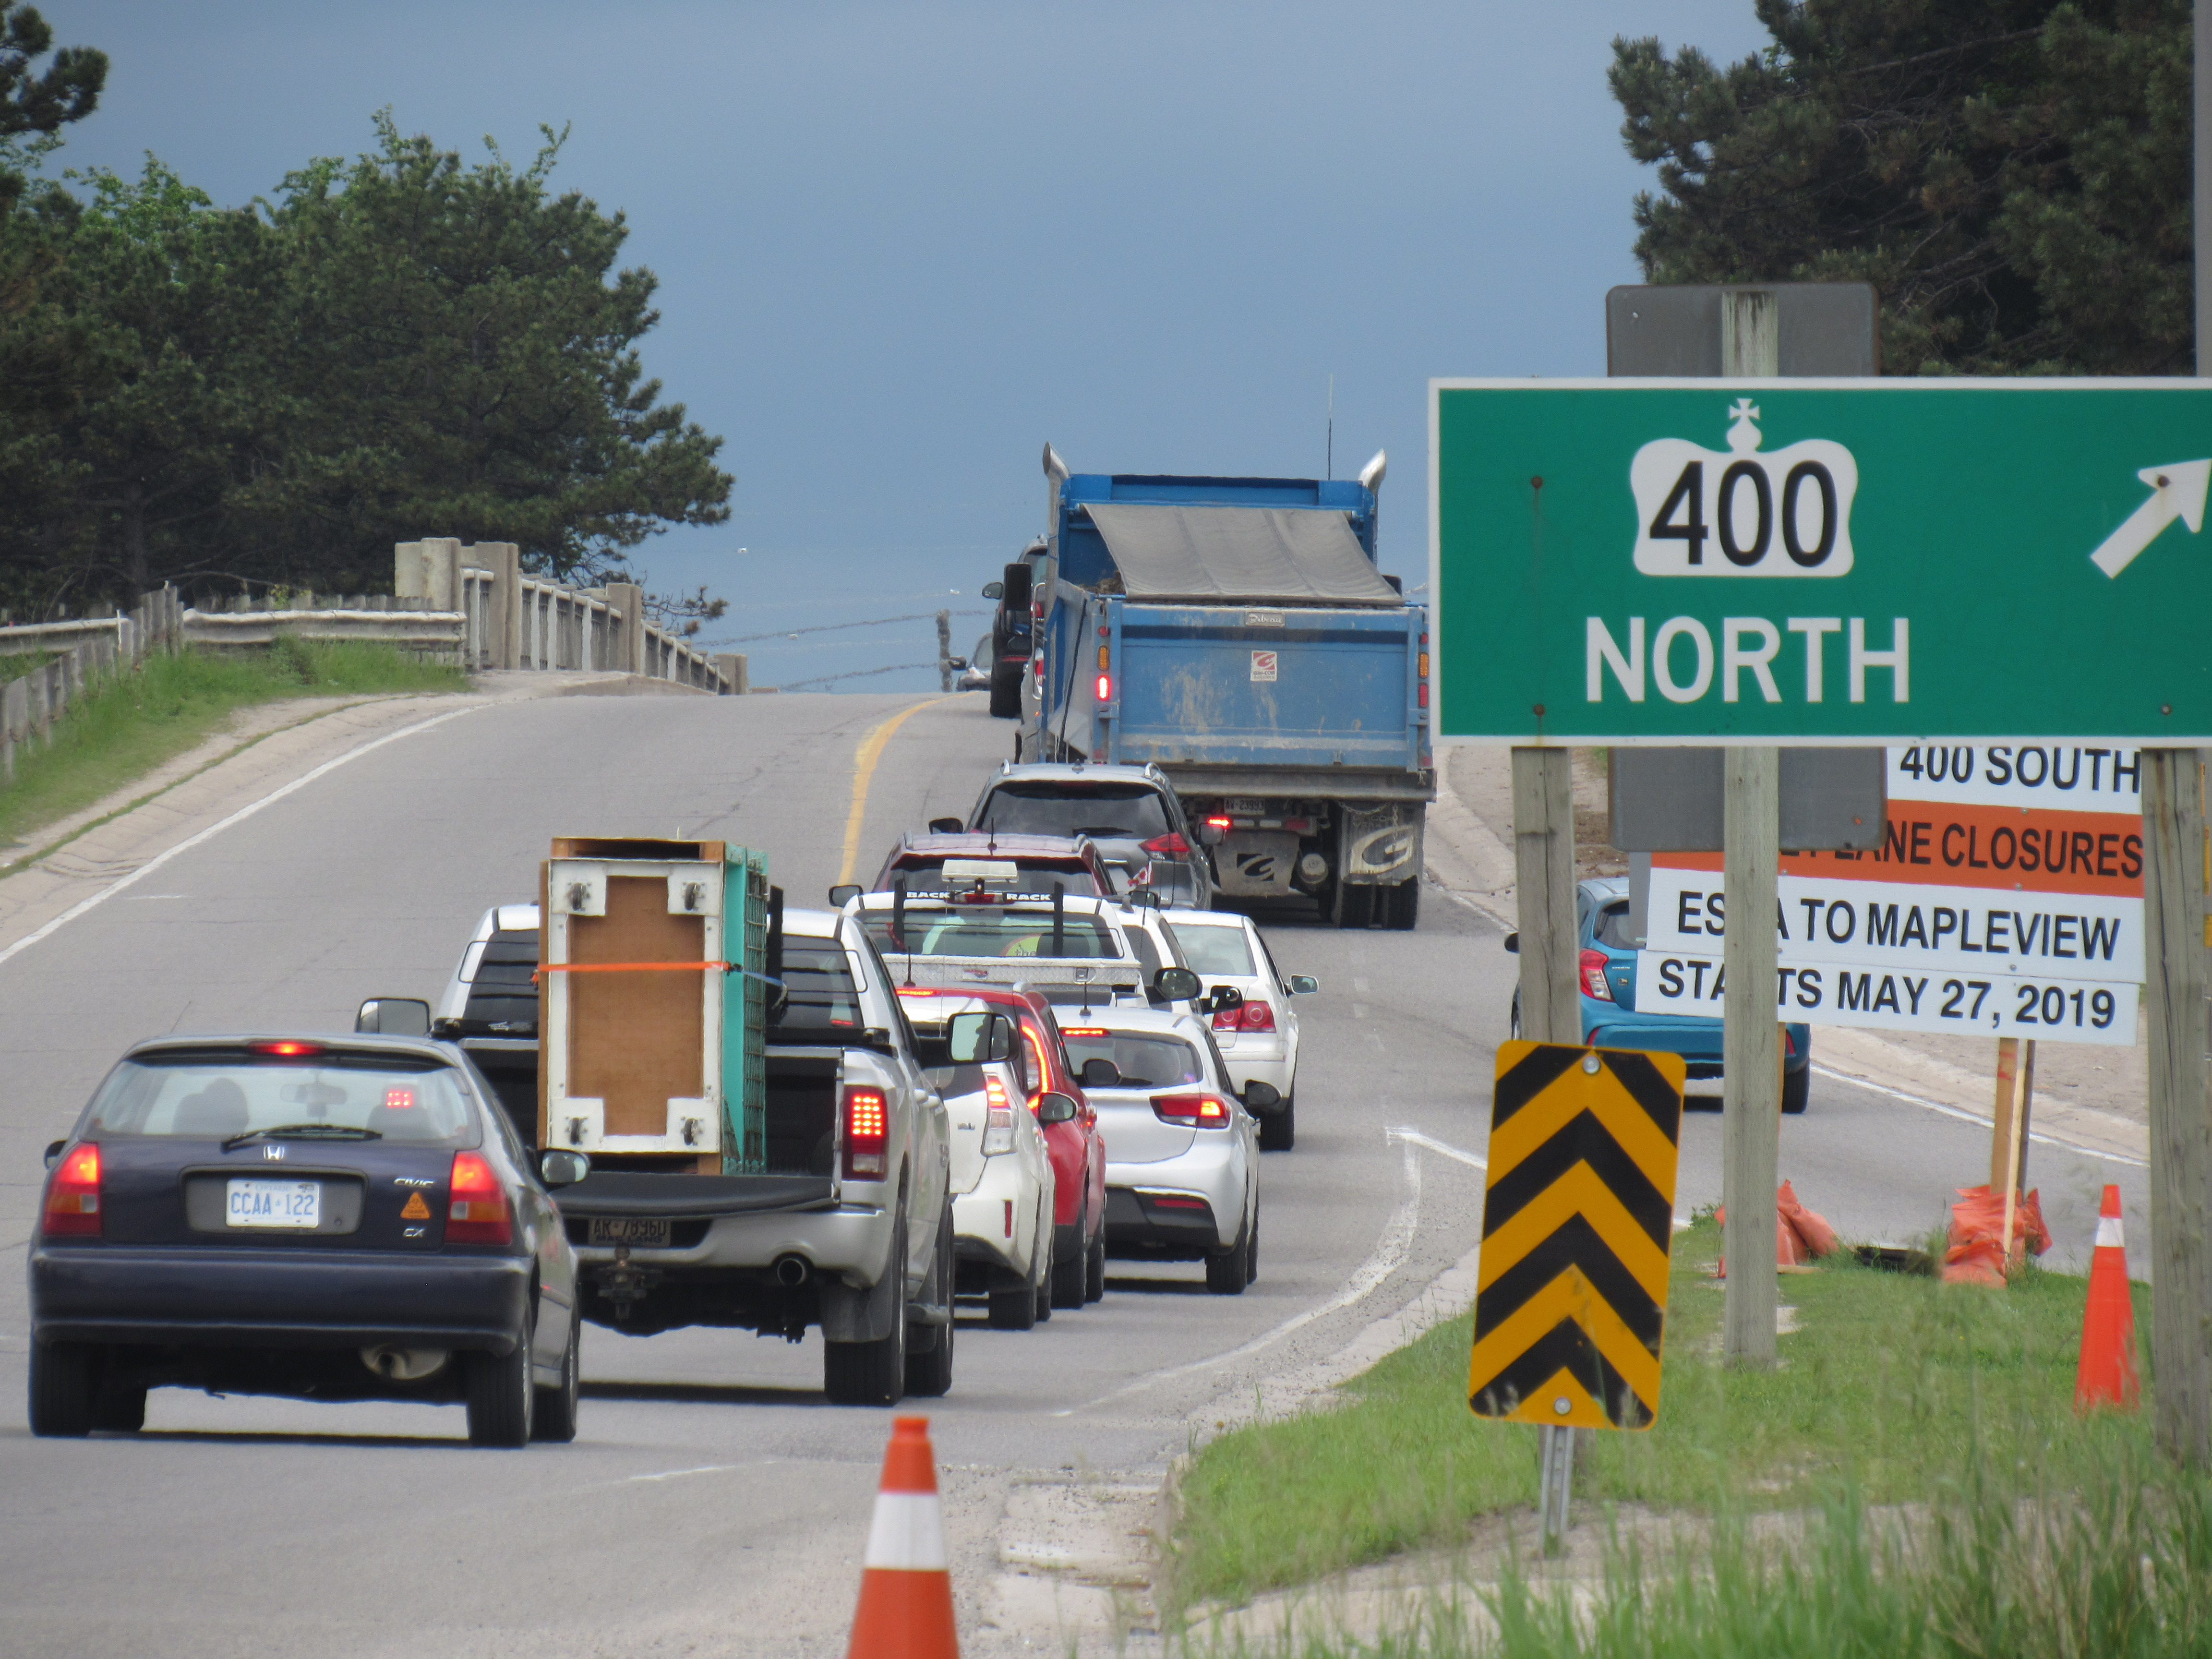 Highway 400, Dunlop widening looks to solve 'critical